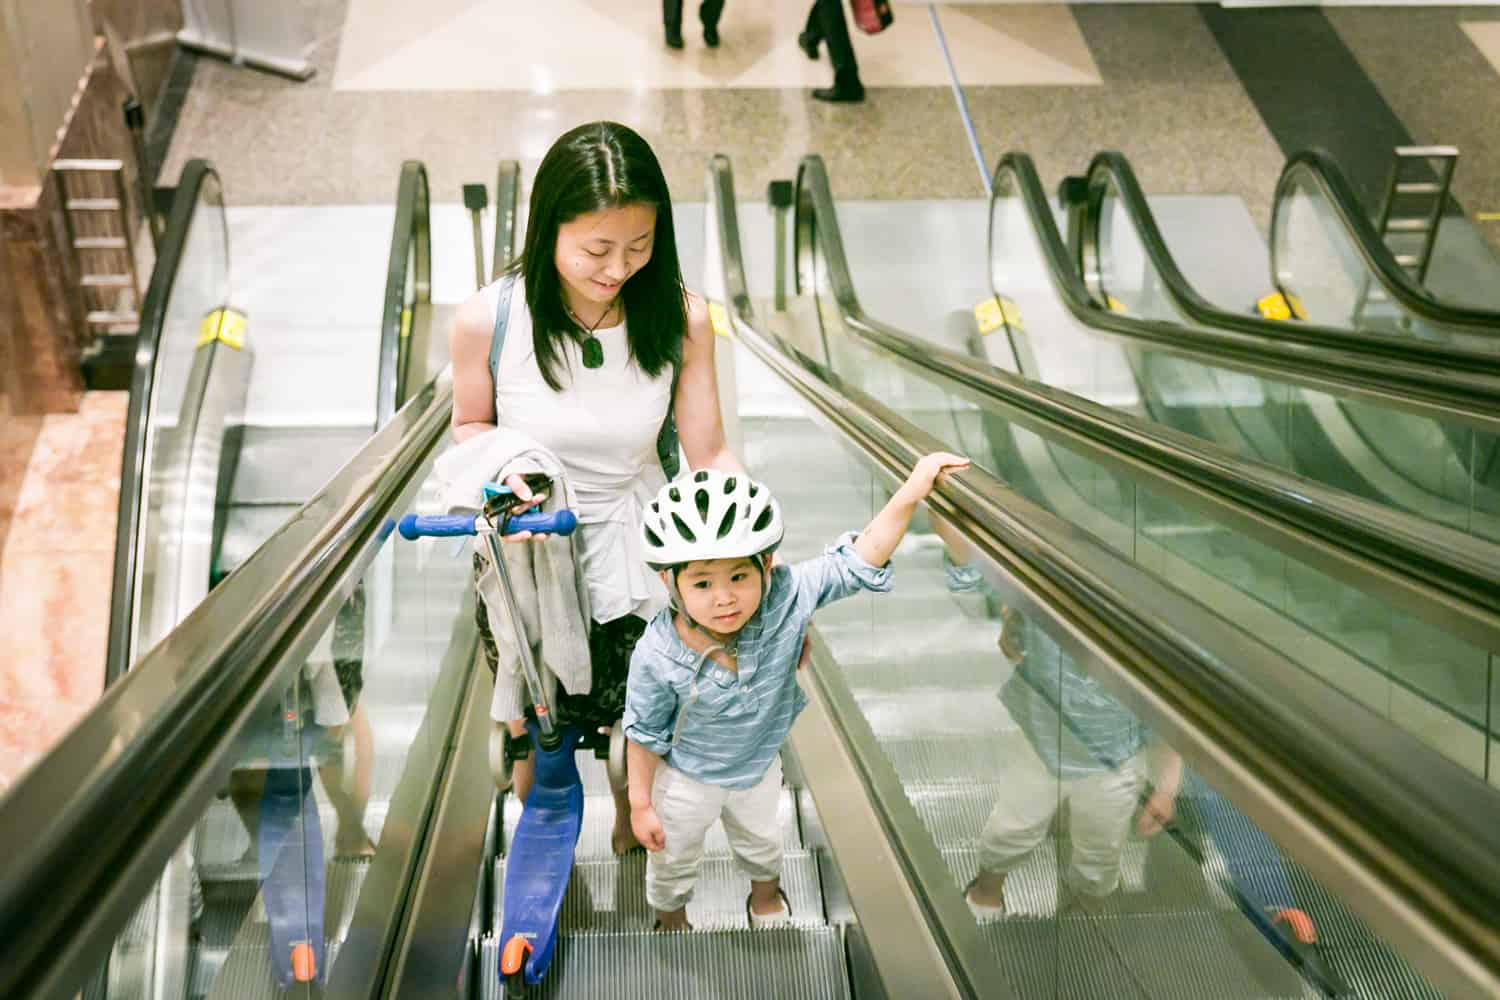 Mother and little boy wearing helmet going up on escalator